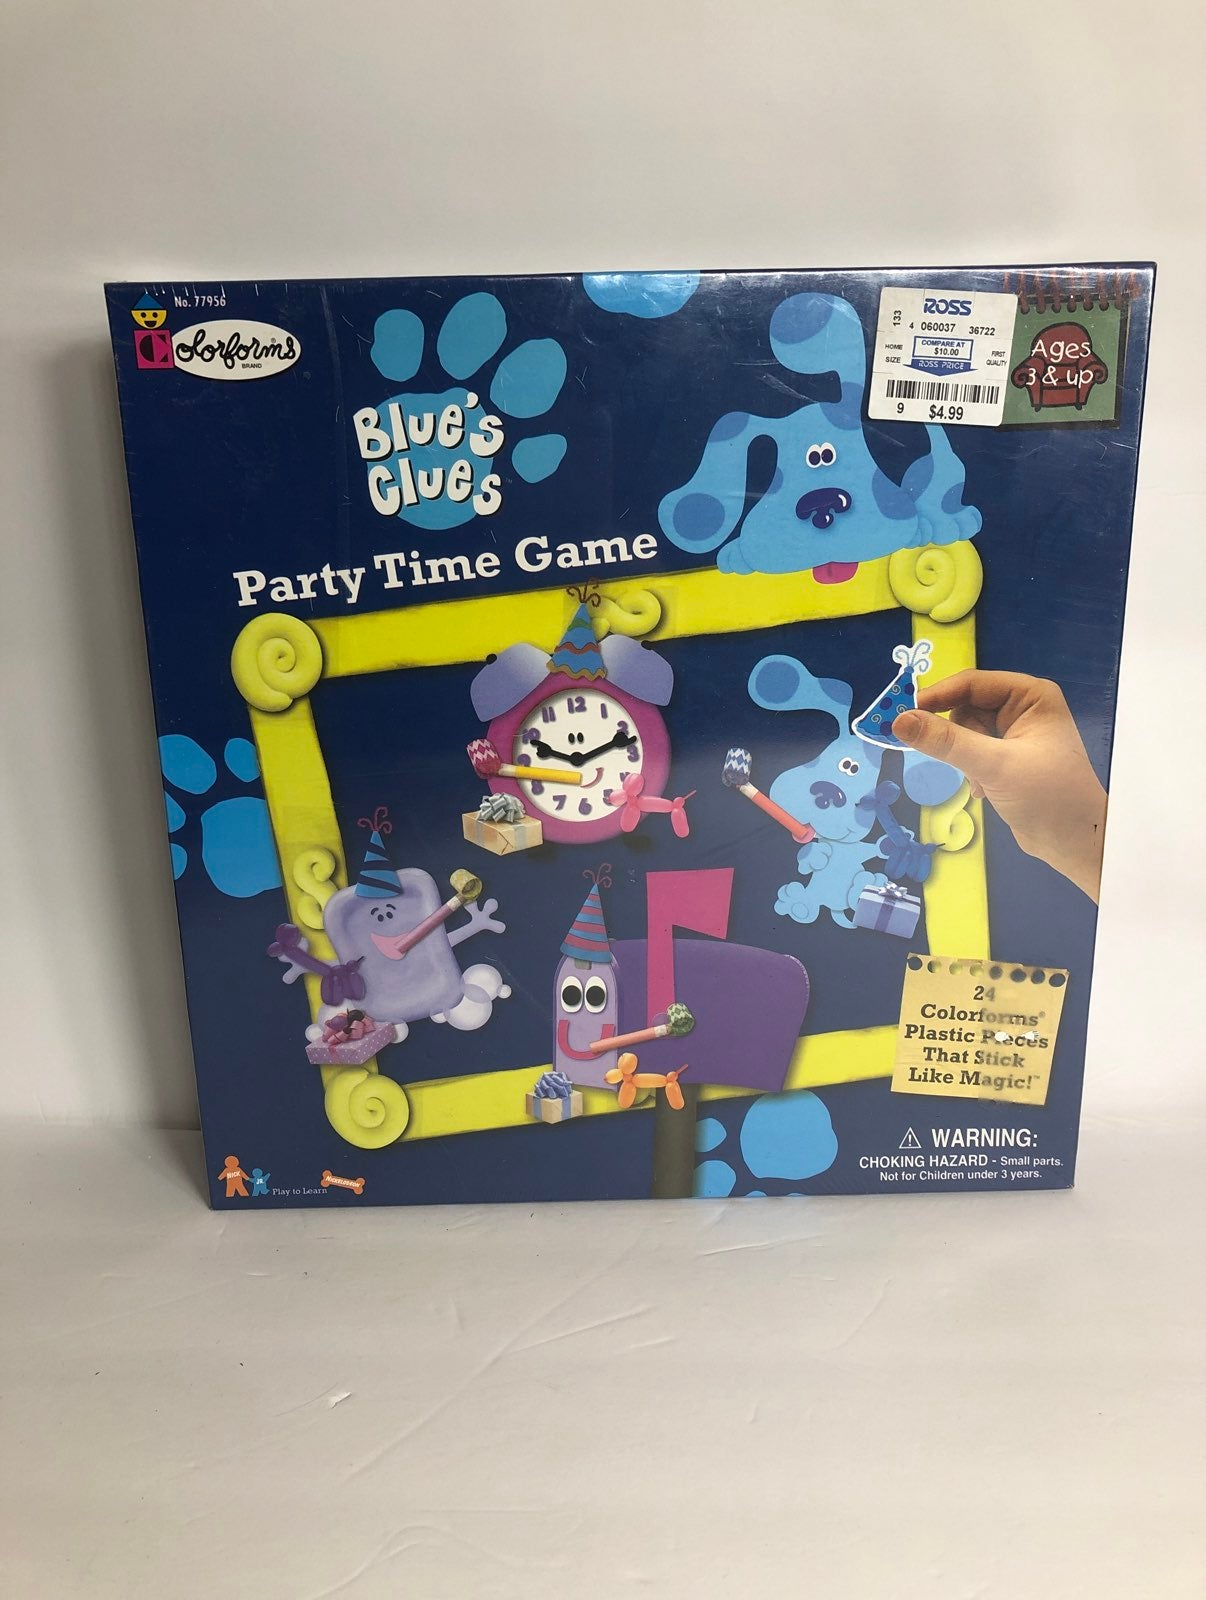 1998 Nickelodeon Blue's Clues Party Game